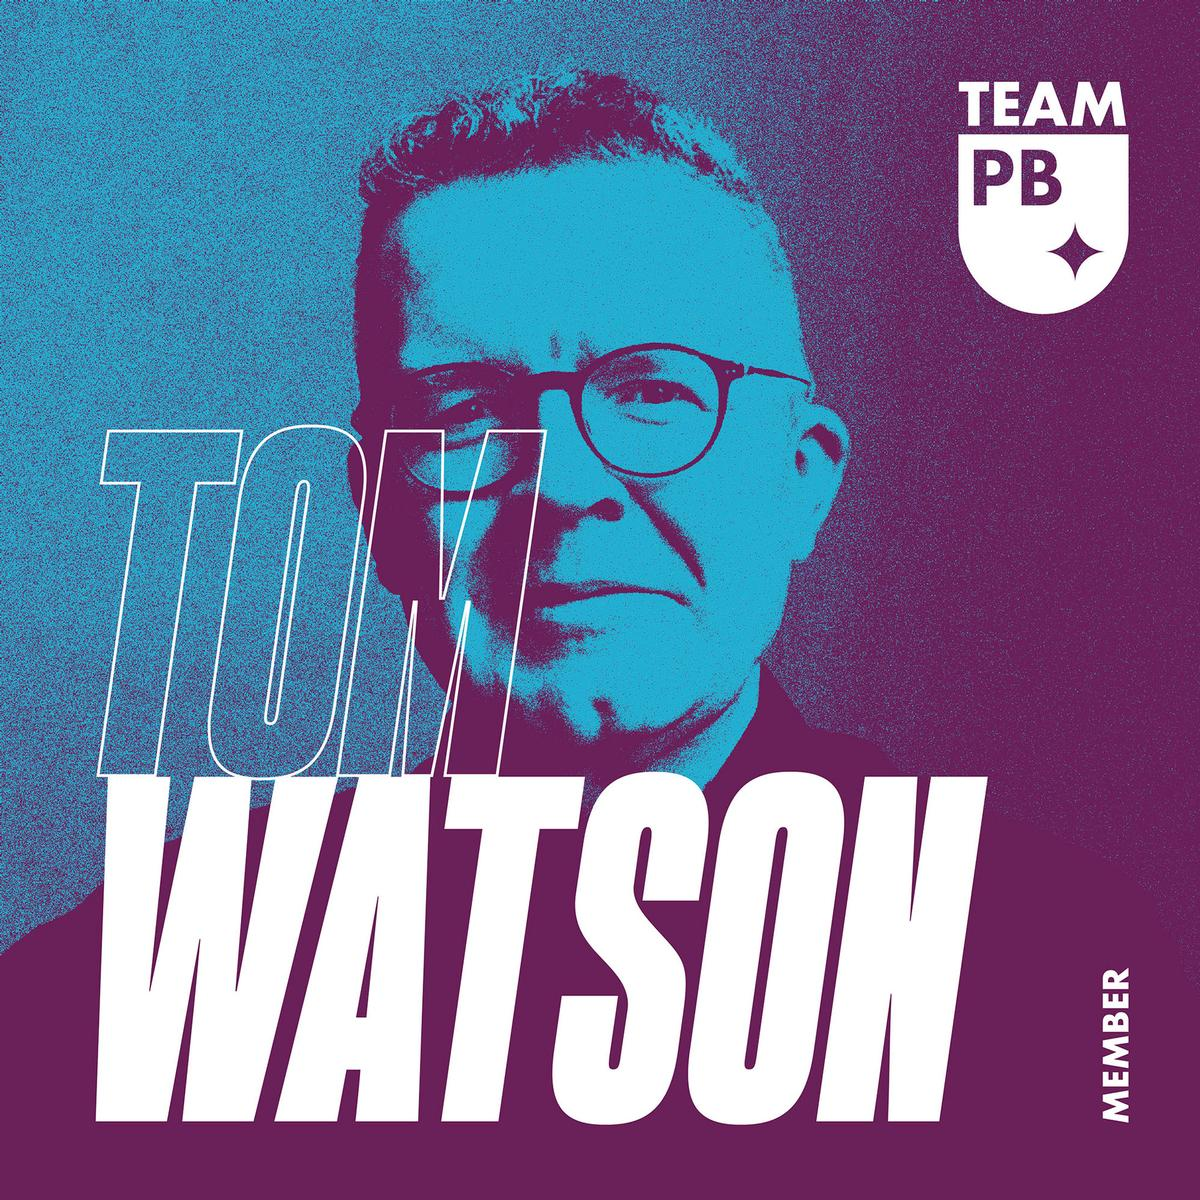 Watson, along with the five other volunteers, will share their Team PB 'stories' / David Lloyd Clubs